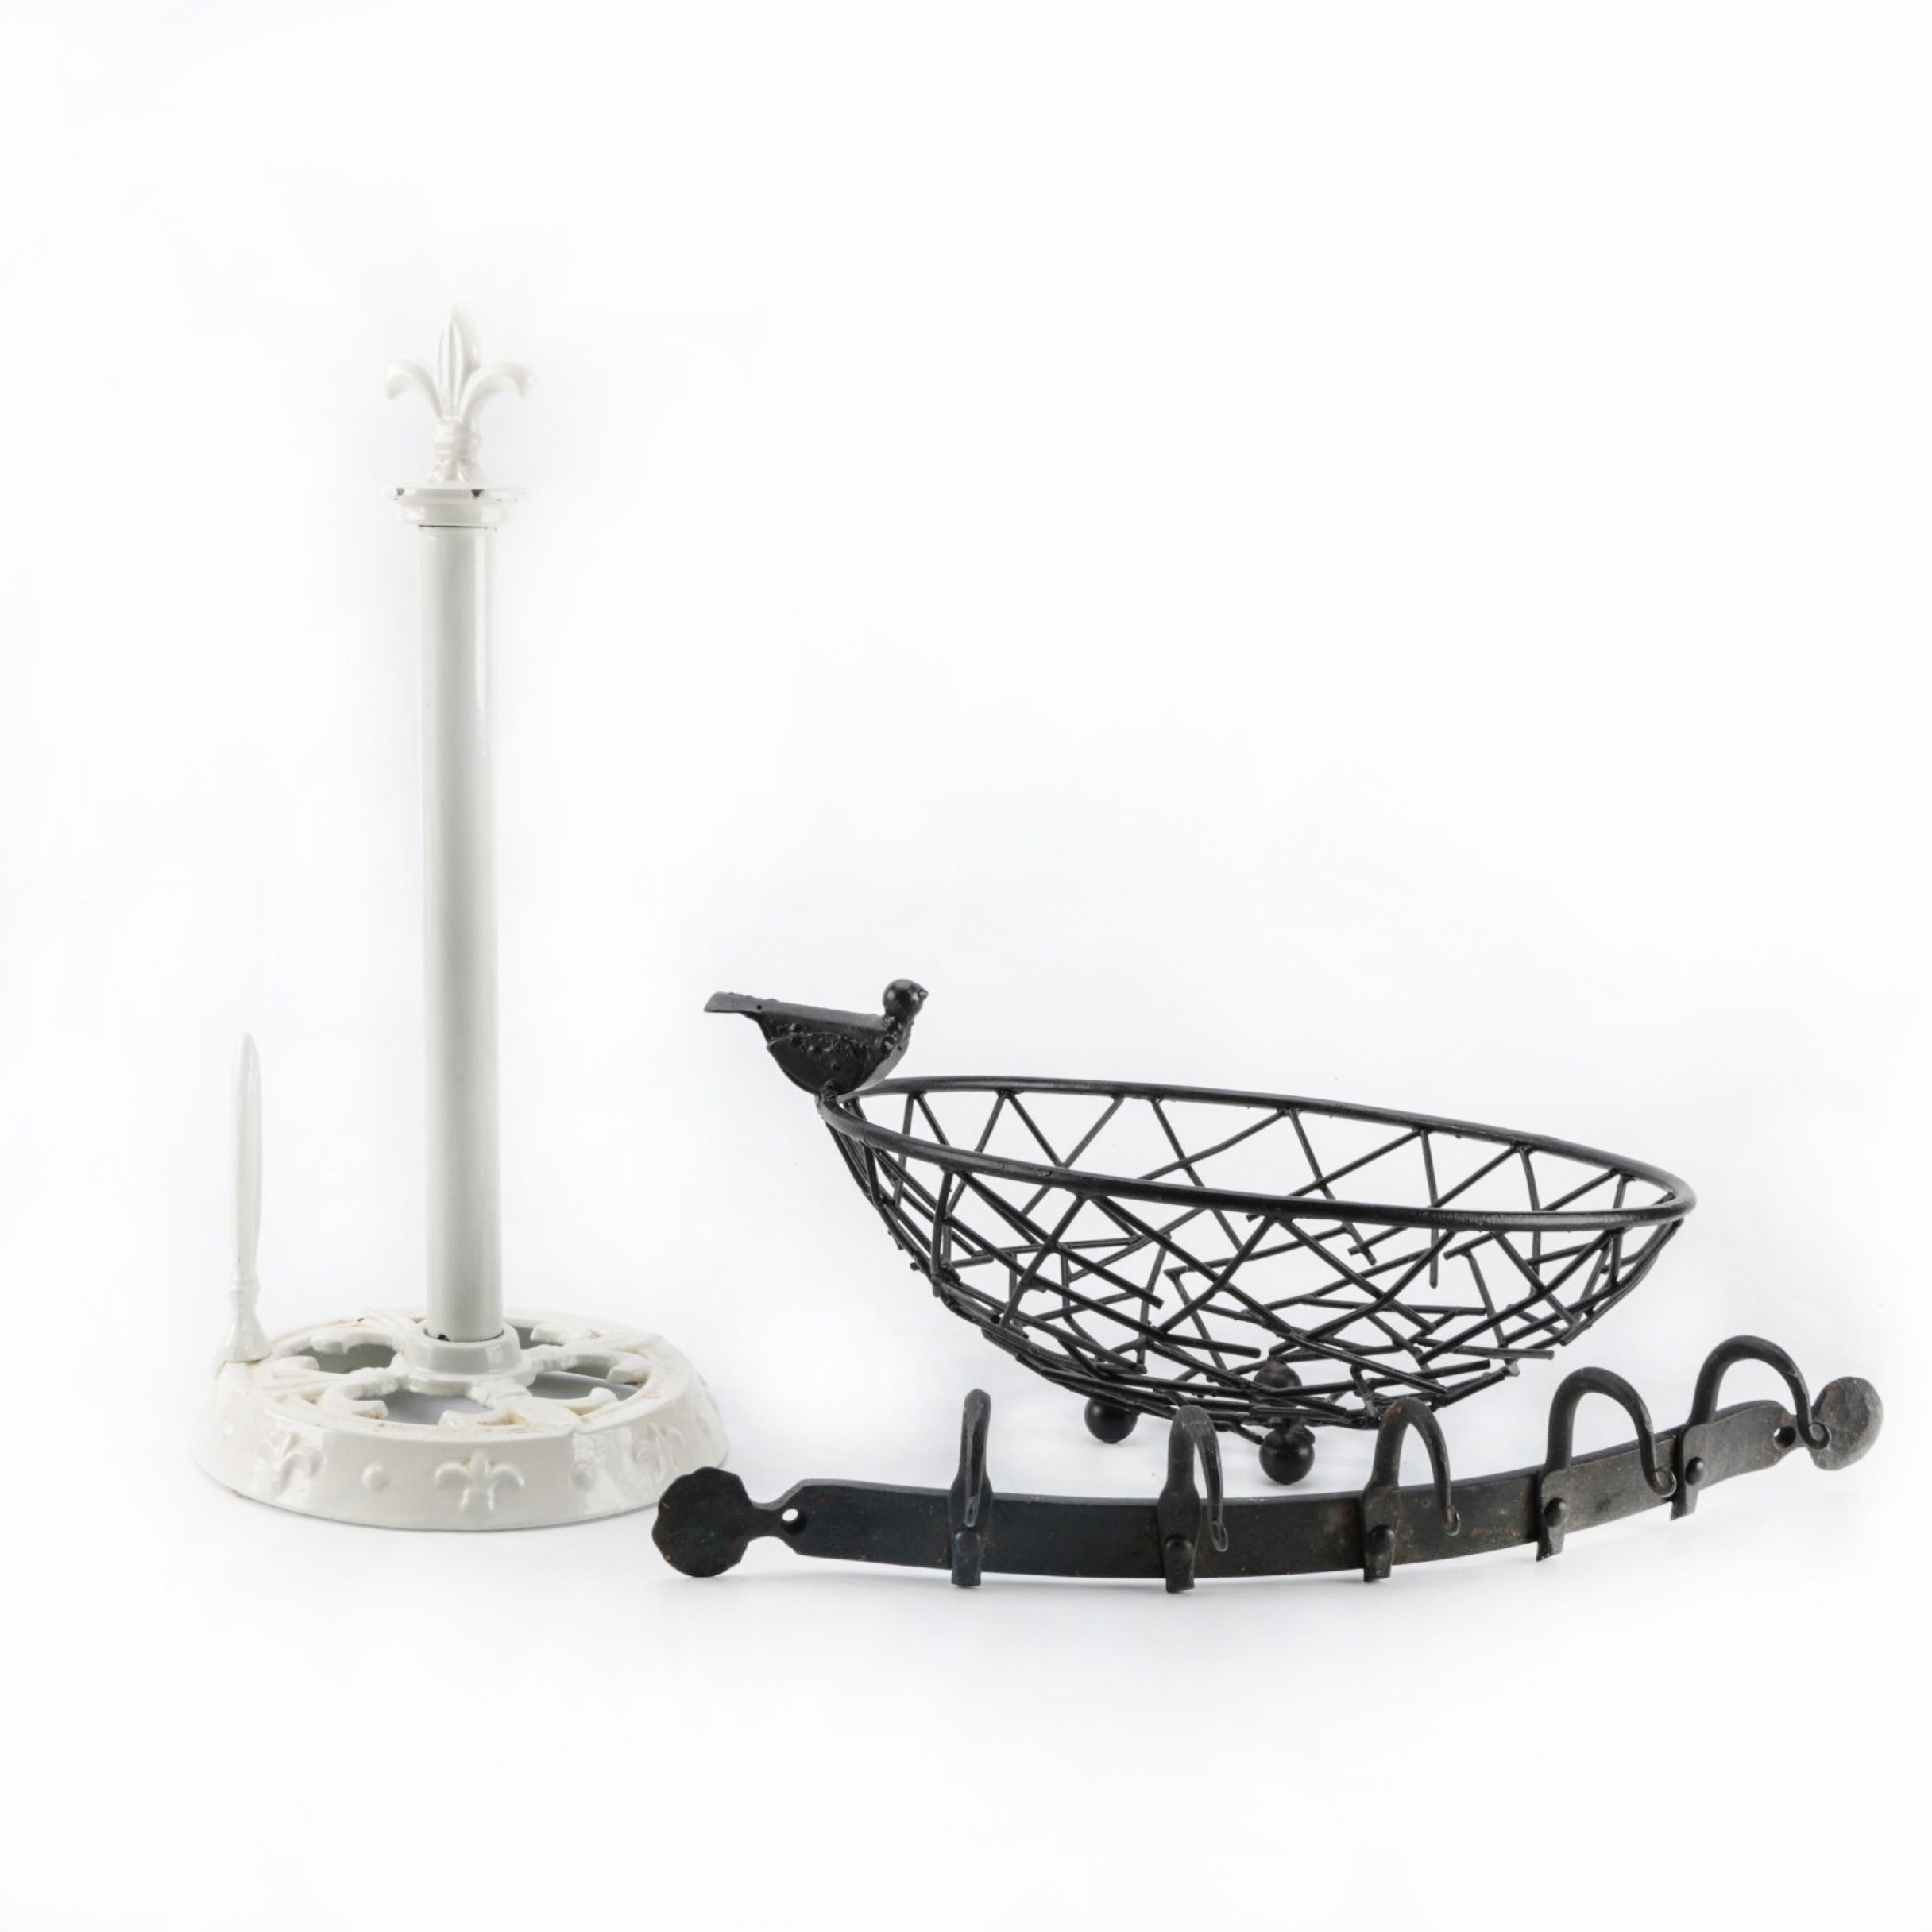 Metalwork Pot Holder and Other Kitchen Decor